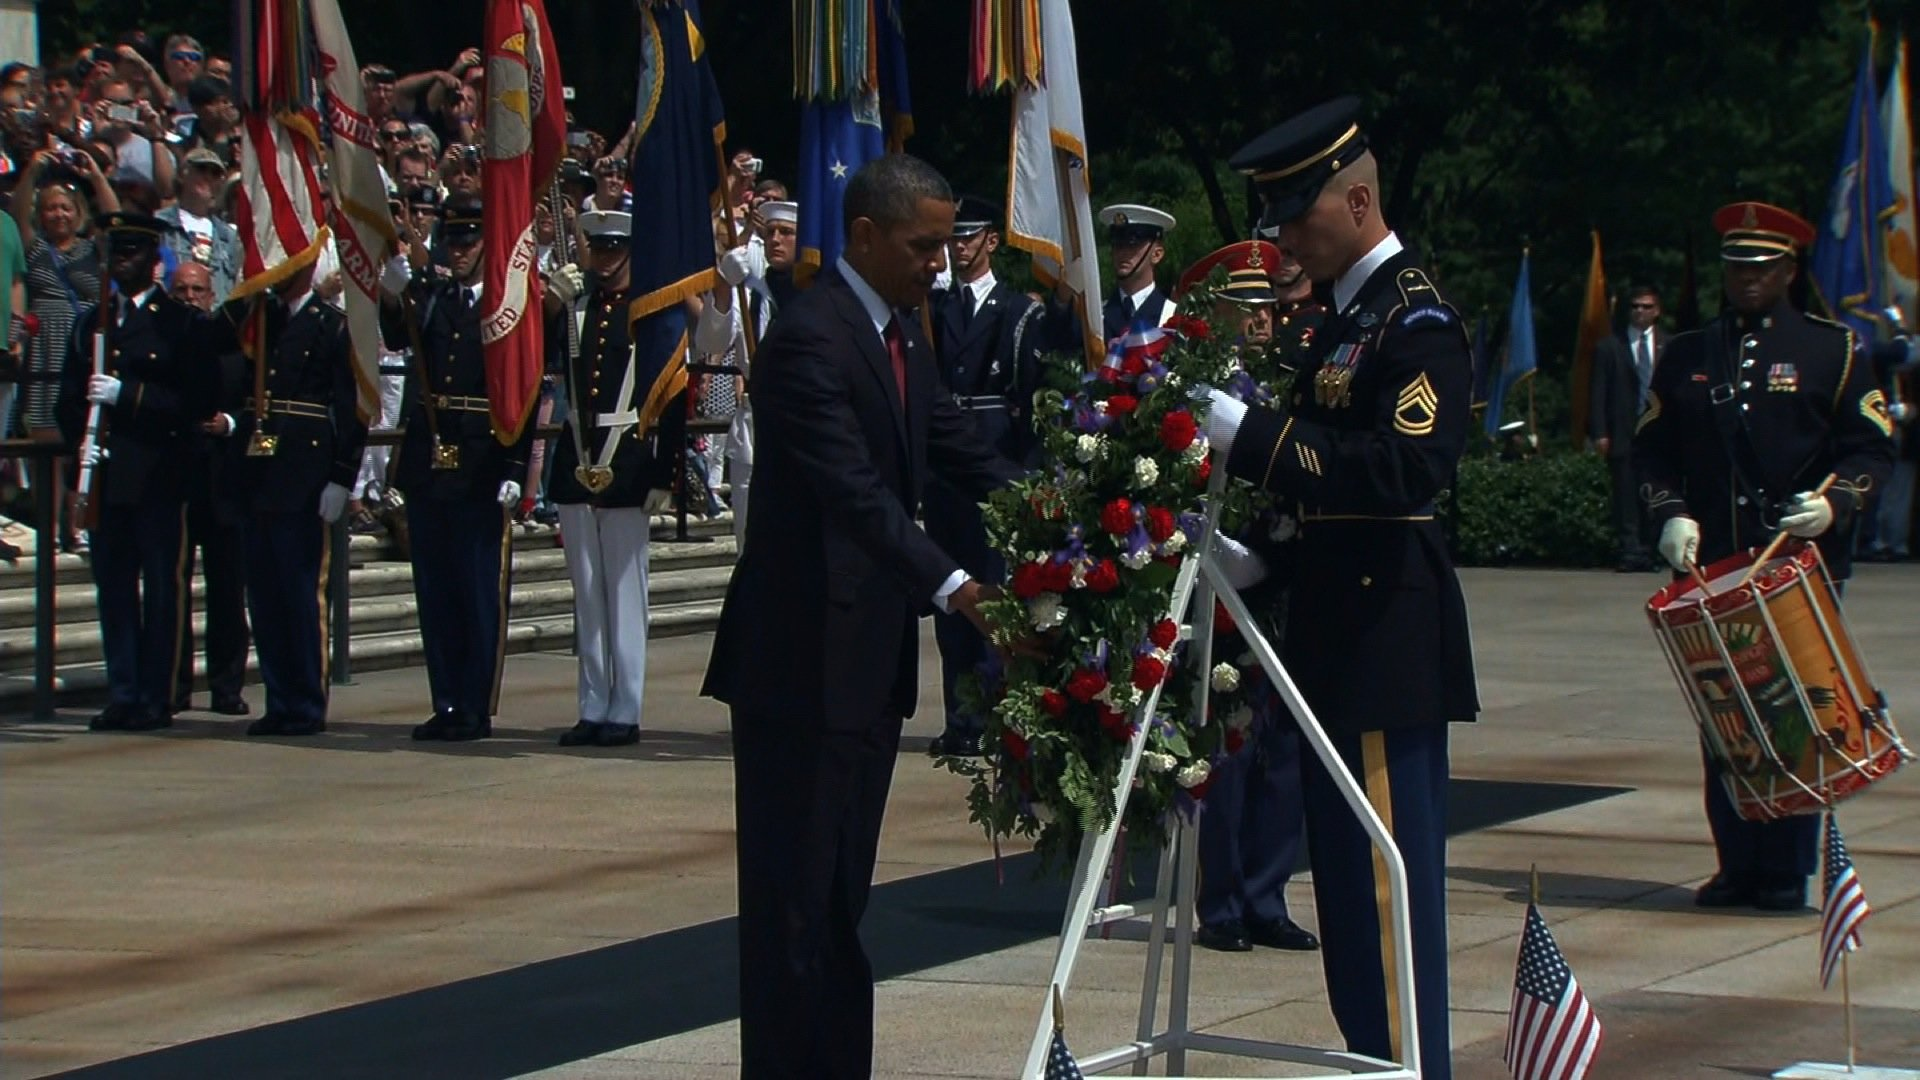 President Barack Obama lays a wreath at the Tomb of the Unknowns at Arlington National Cemetery on Memorial Day, May 27, 2013. (Credit: CNN)